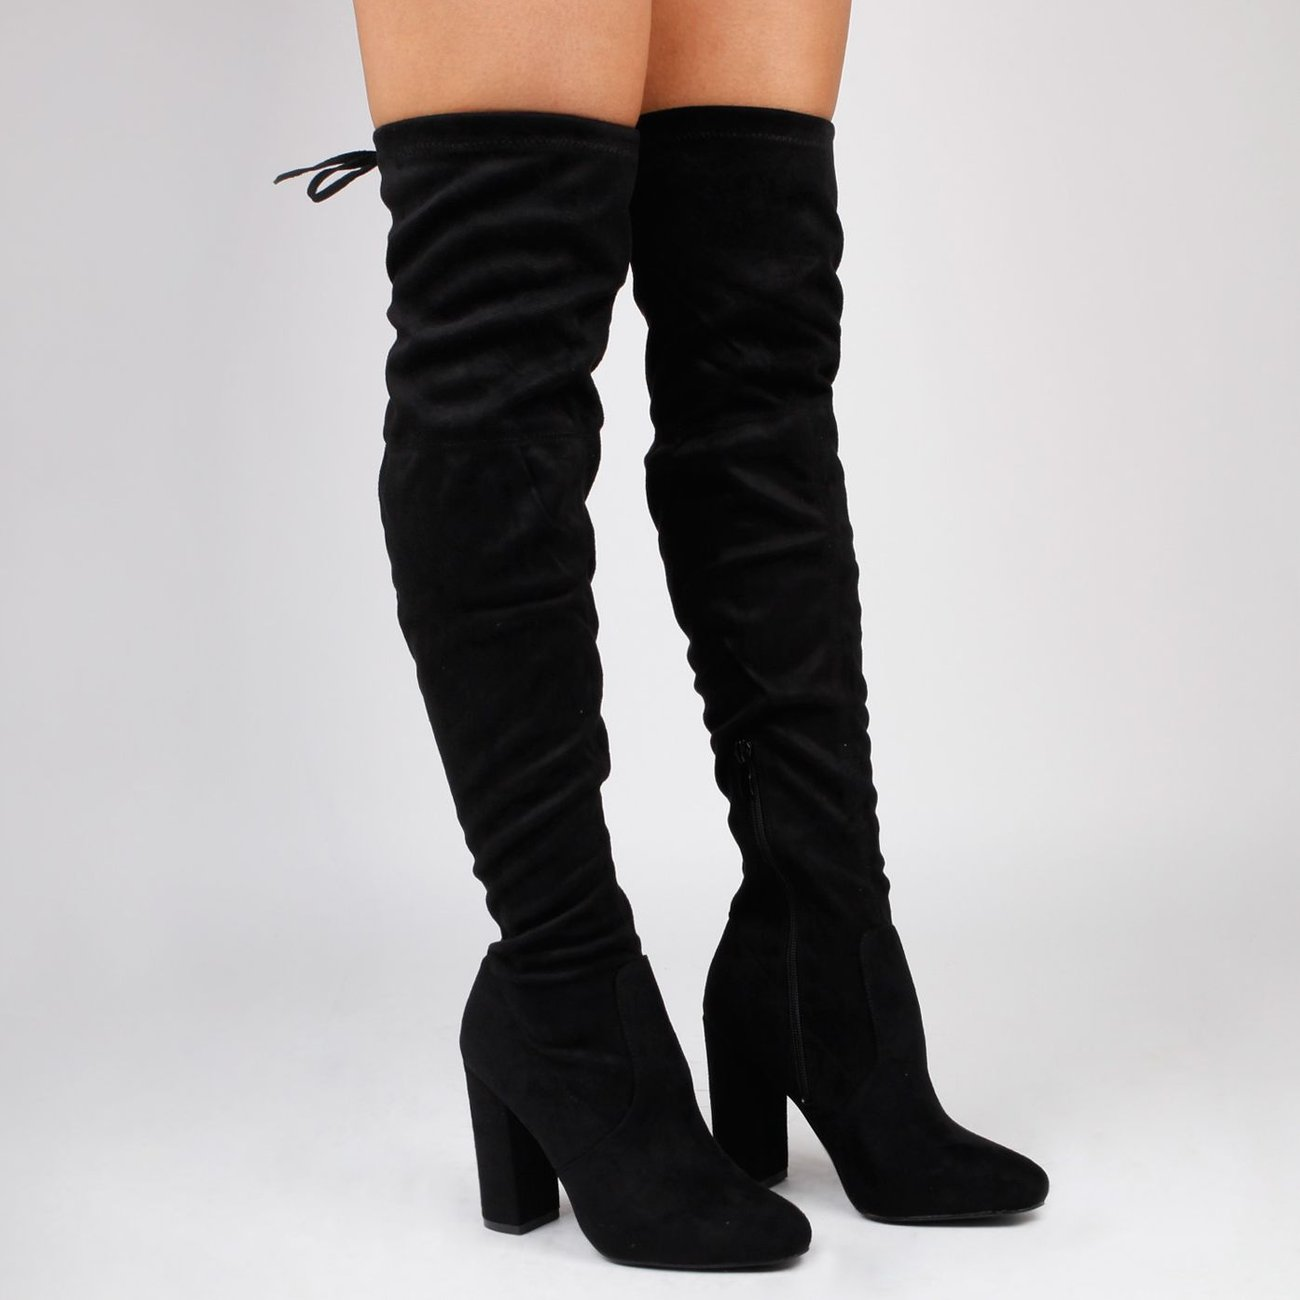 Ego Ivy Over The Knee Black Faux Suede Boots